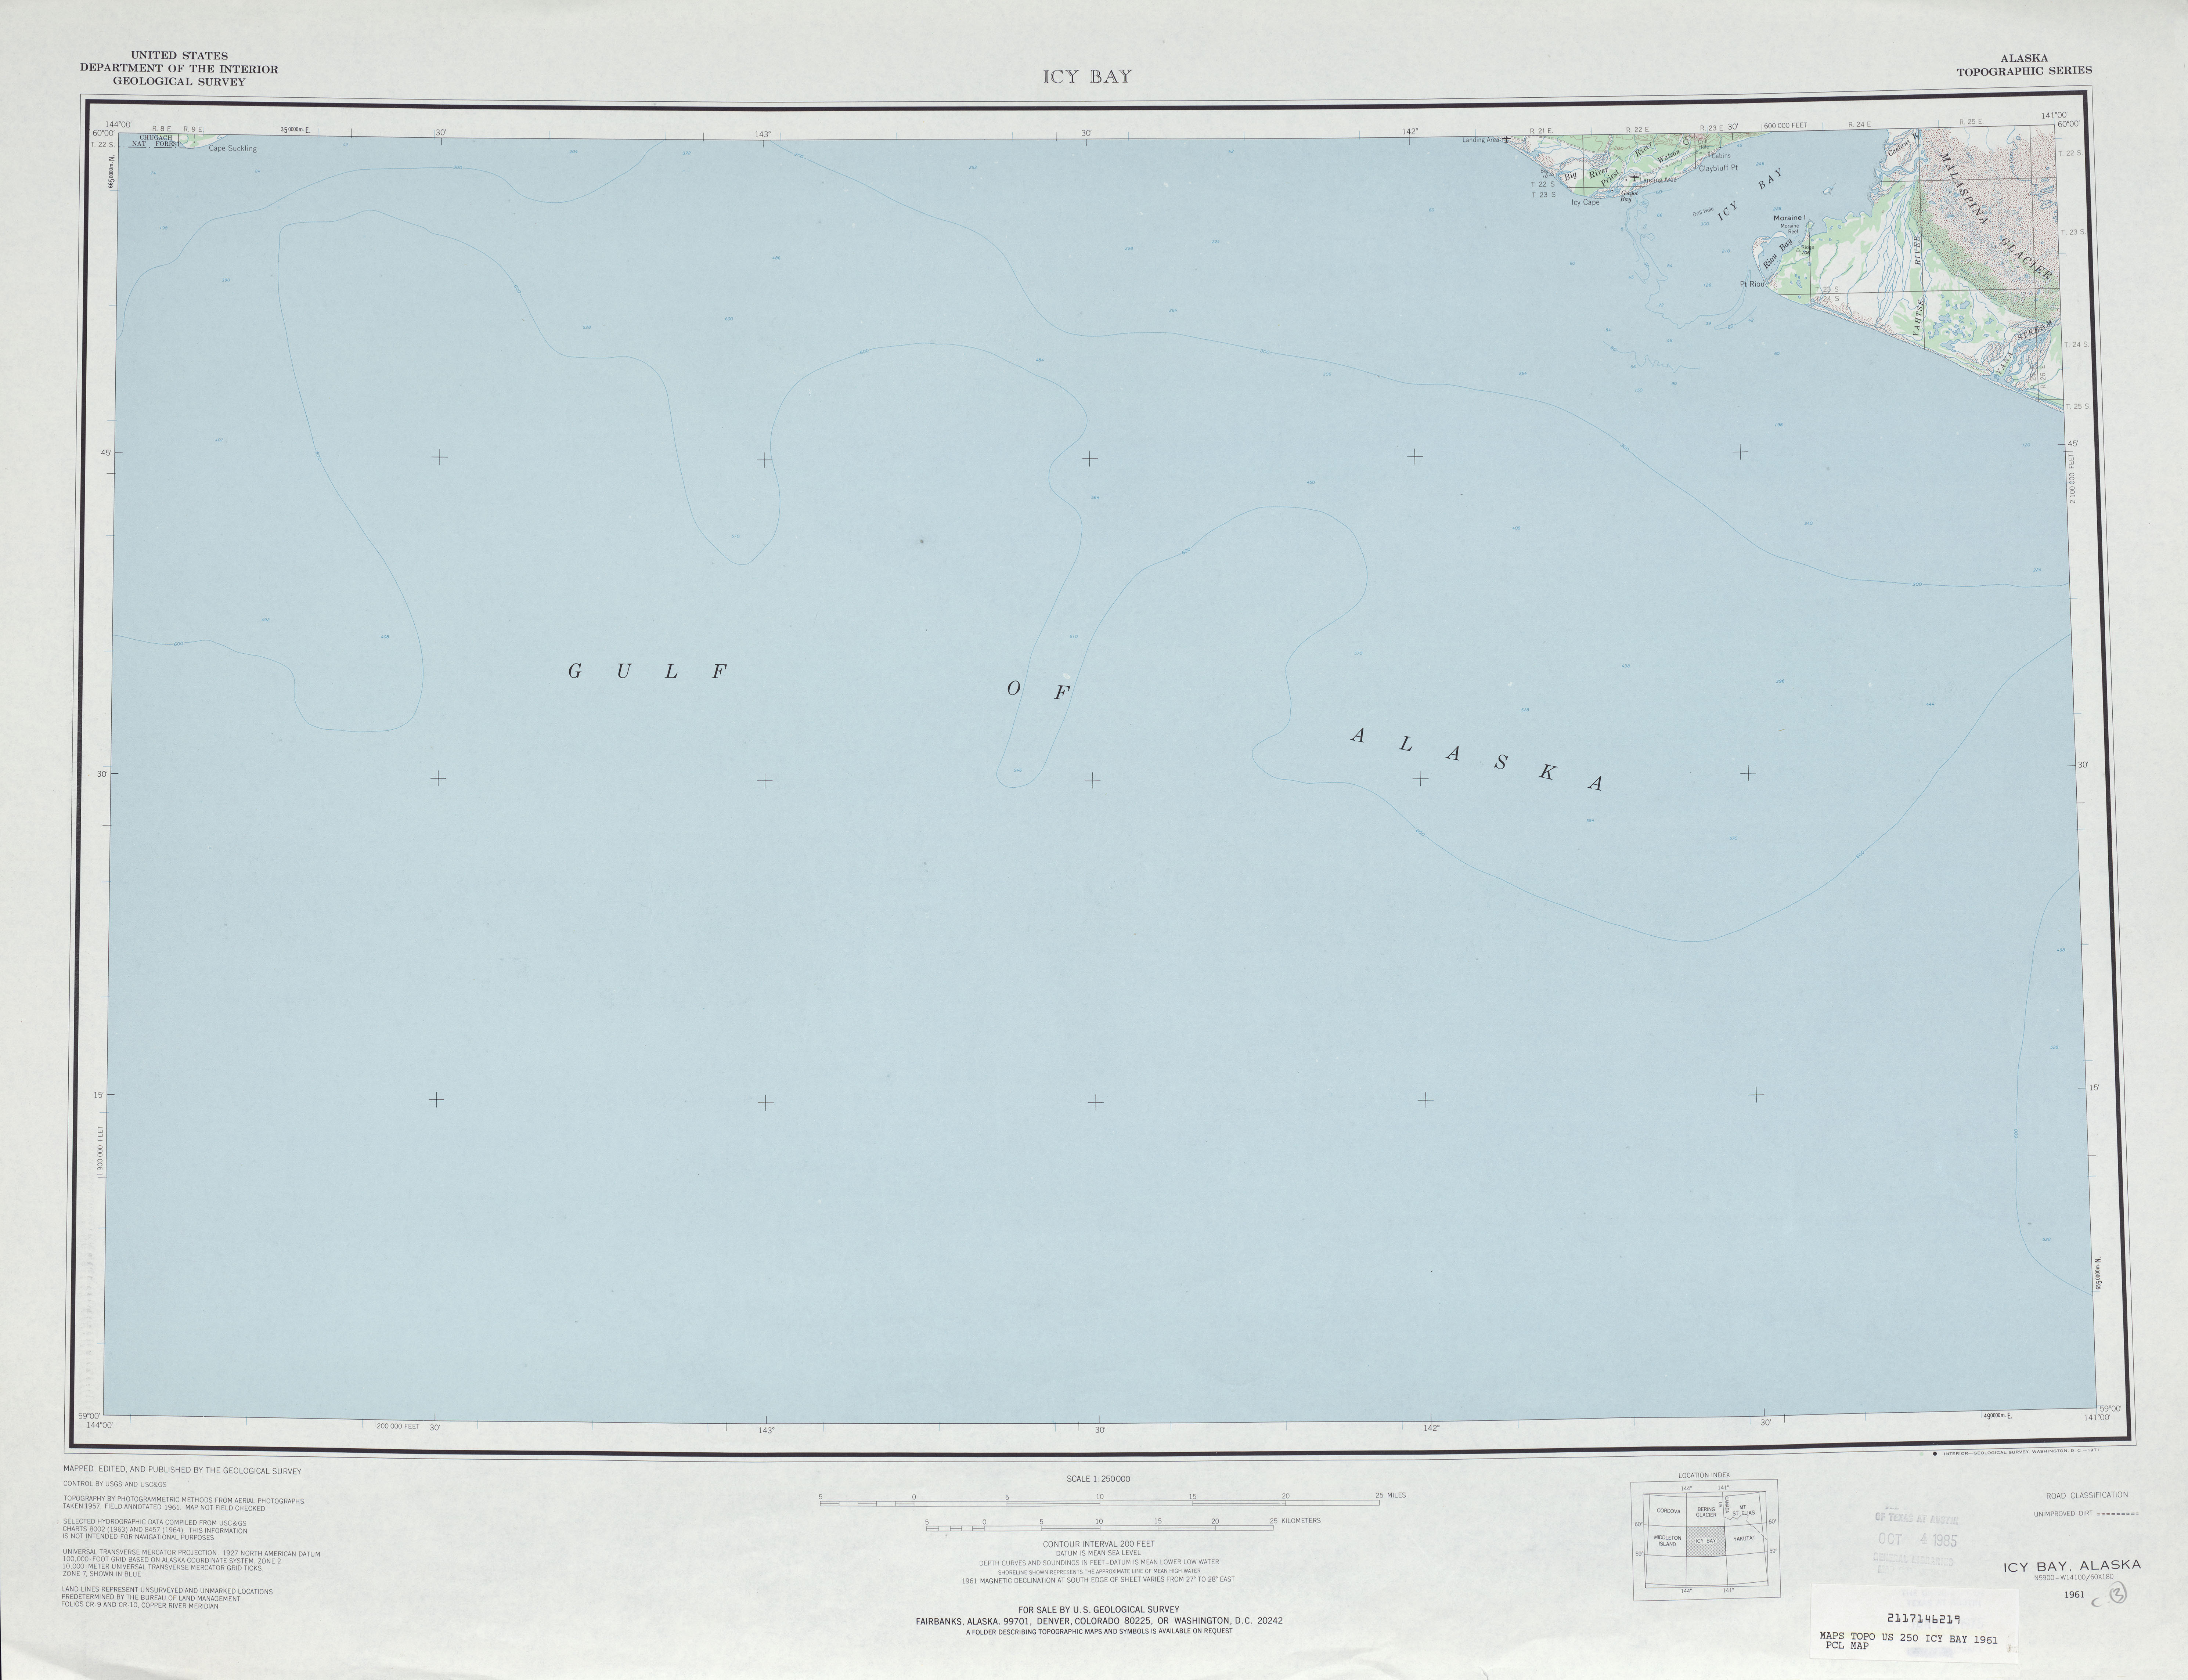 Icy Bay Topographic Map Sheet, United States 1961